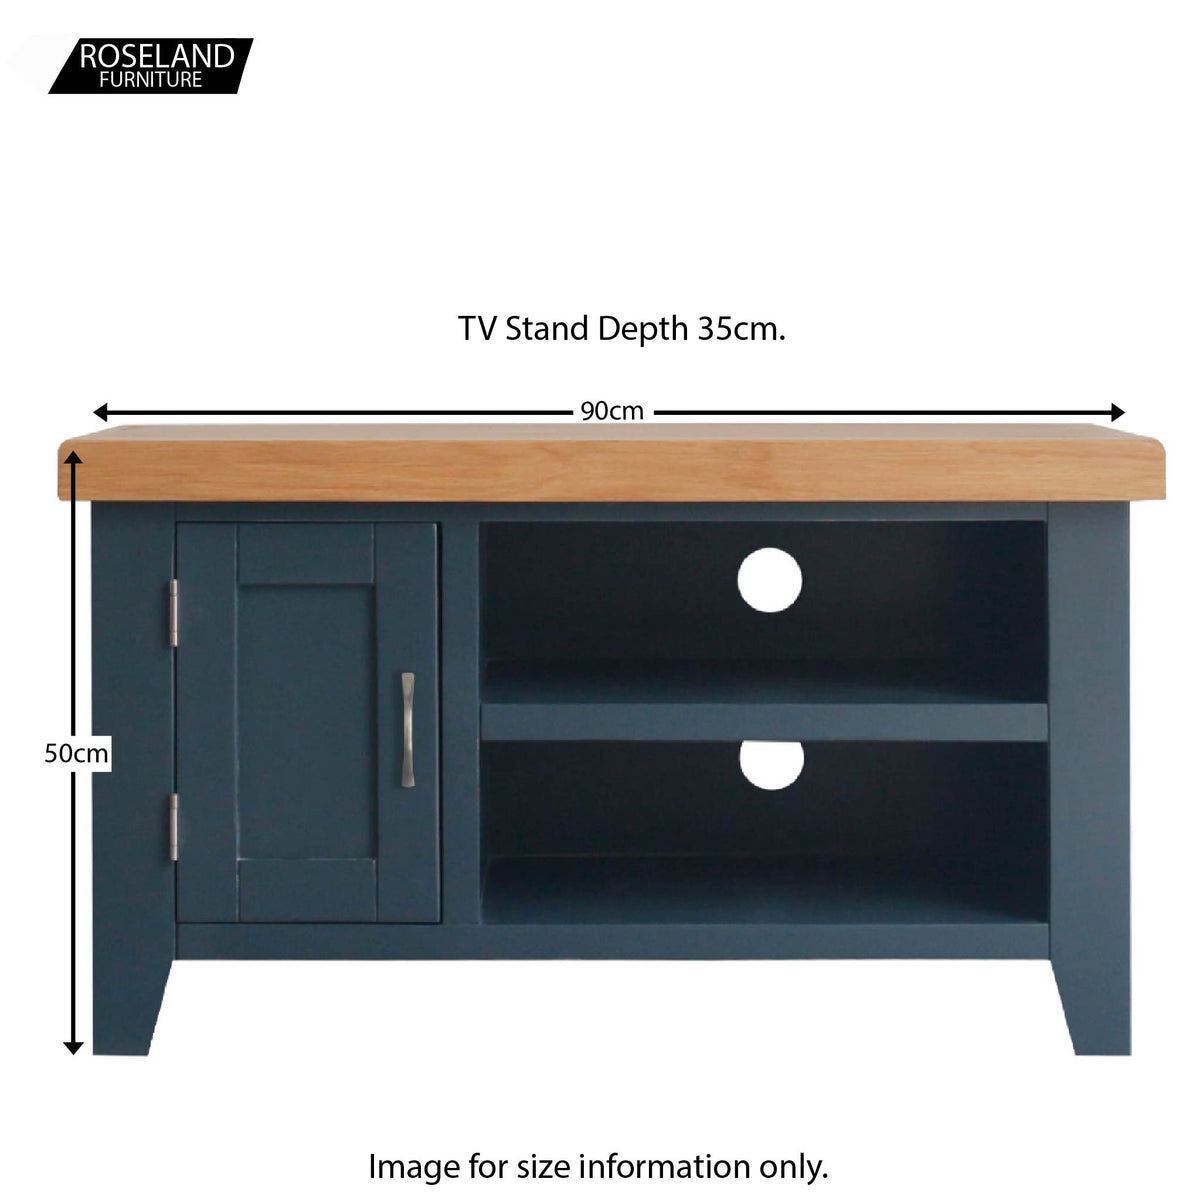 Dimensions for the Chatsworth Blue 90 cm Small TV Stand from Roseland Furniture